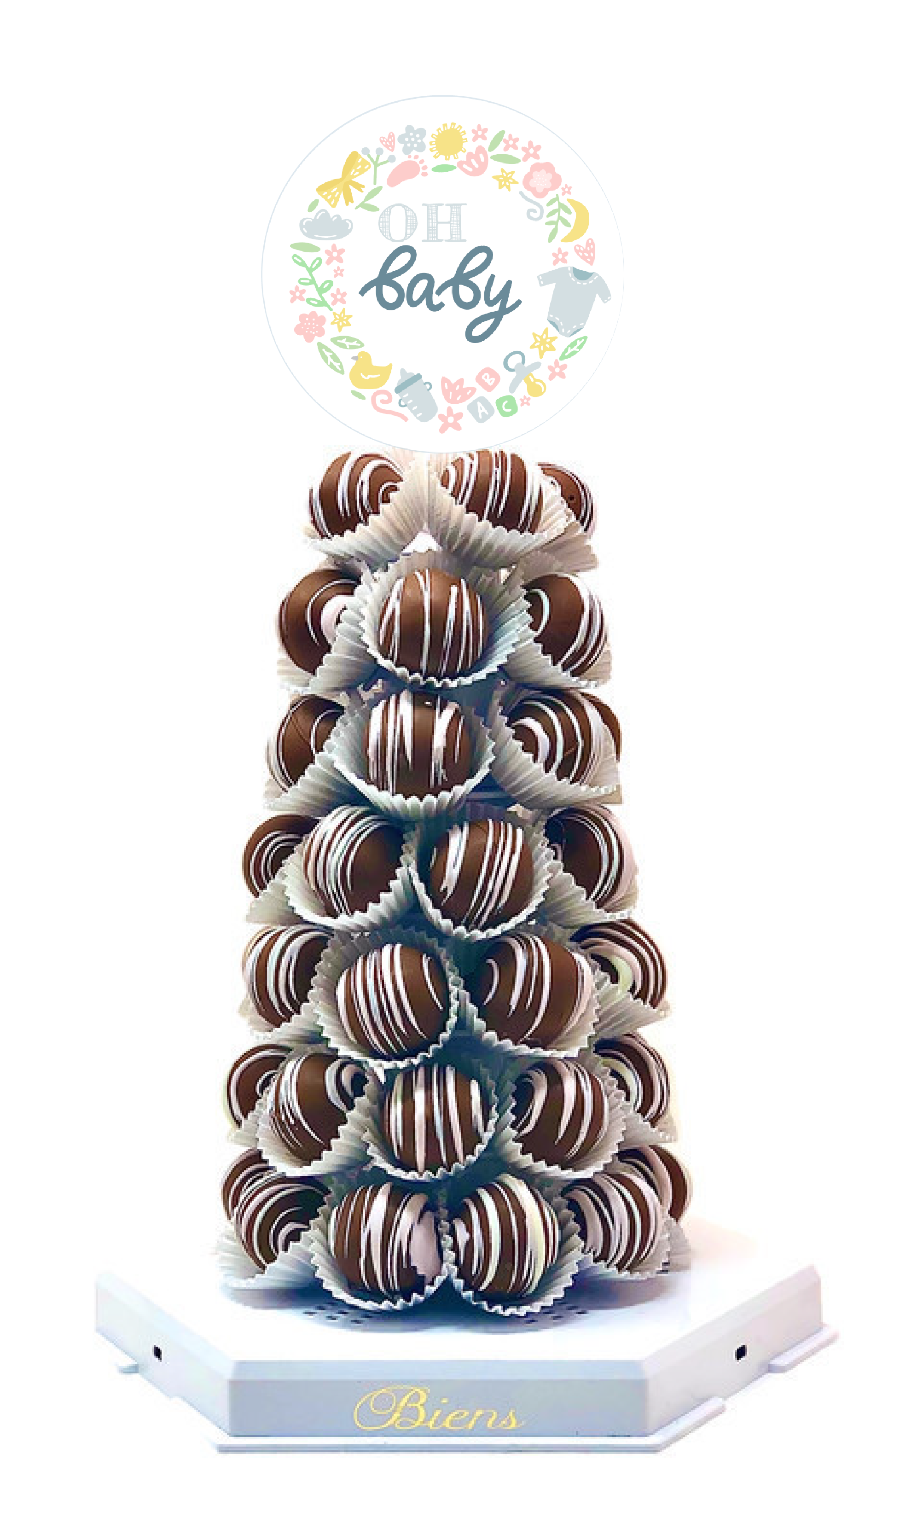 OH Baby Bien Tower - The Dessert Ladies, custom corporate gifts, gourmet chocolate gifts,